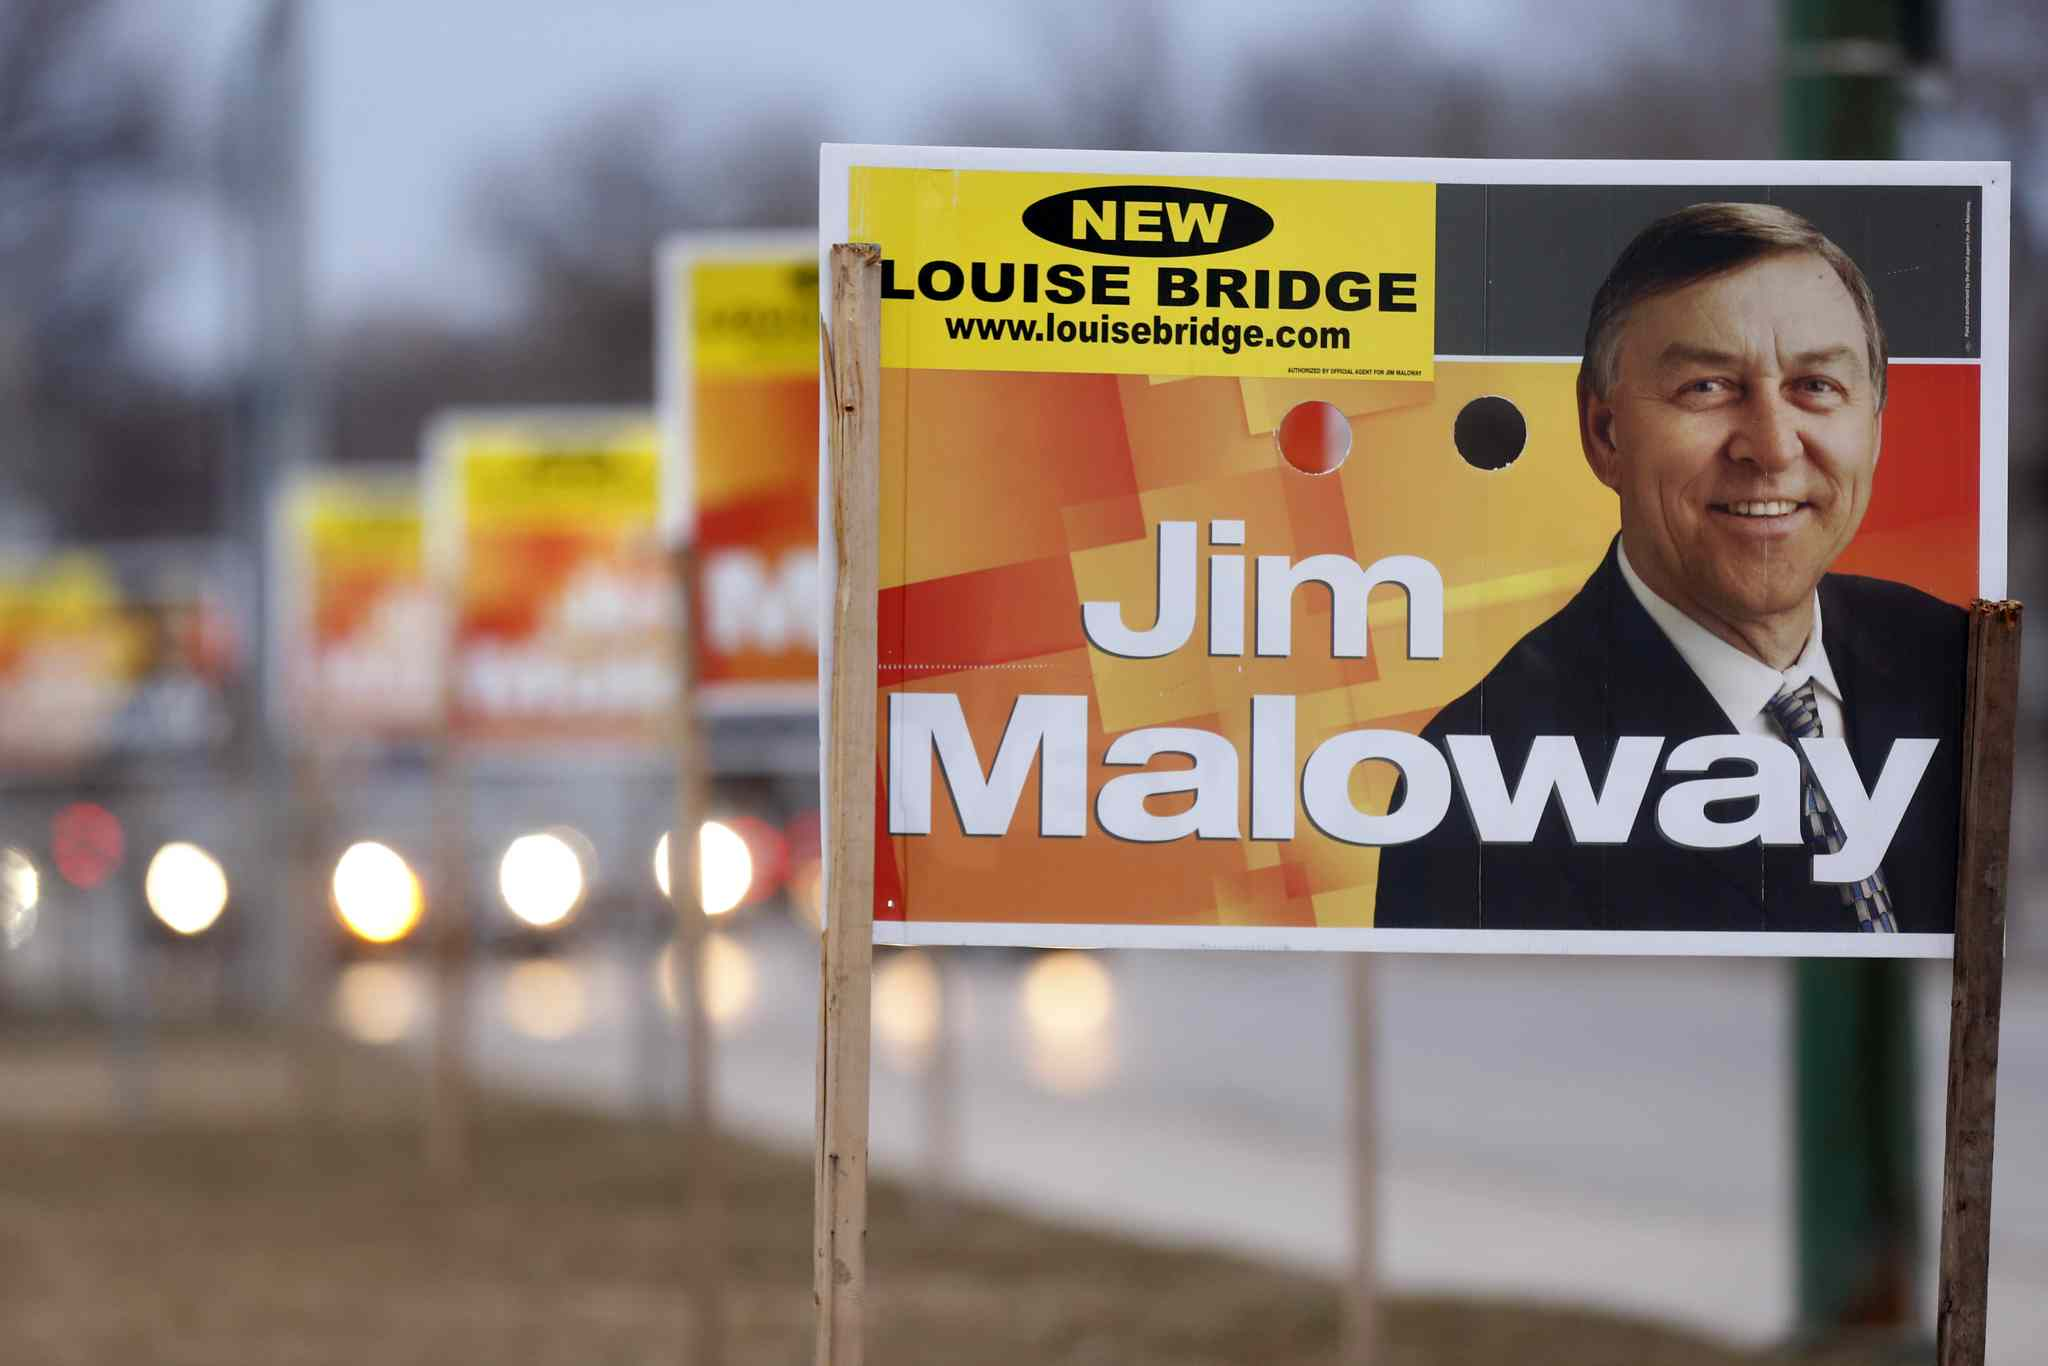 Internal polls suggested the NDP's grip on traditional strongholds, such as Elmwood, was slipping.